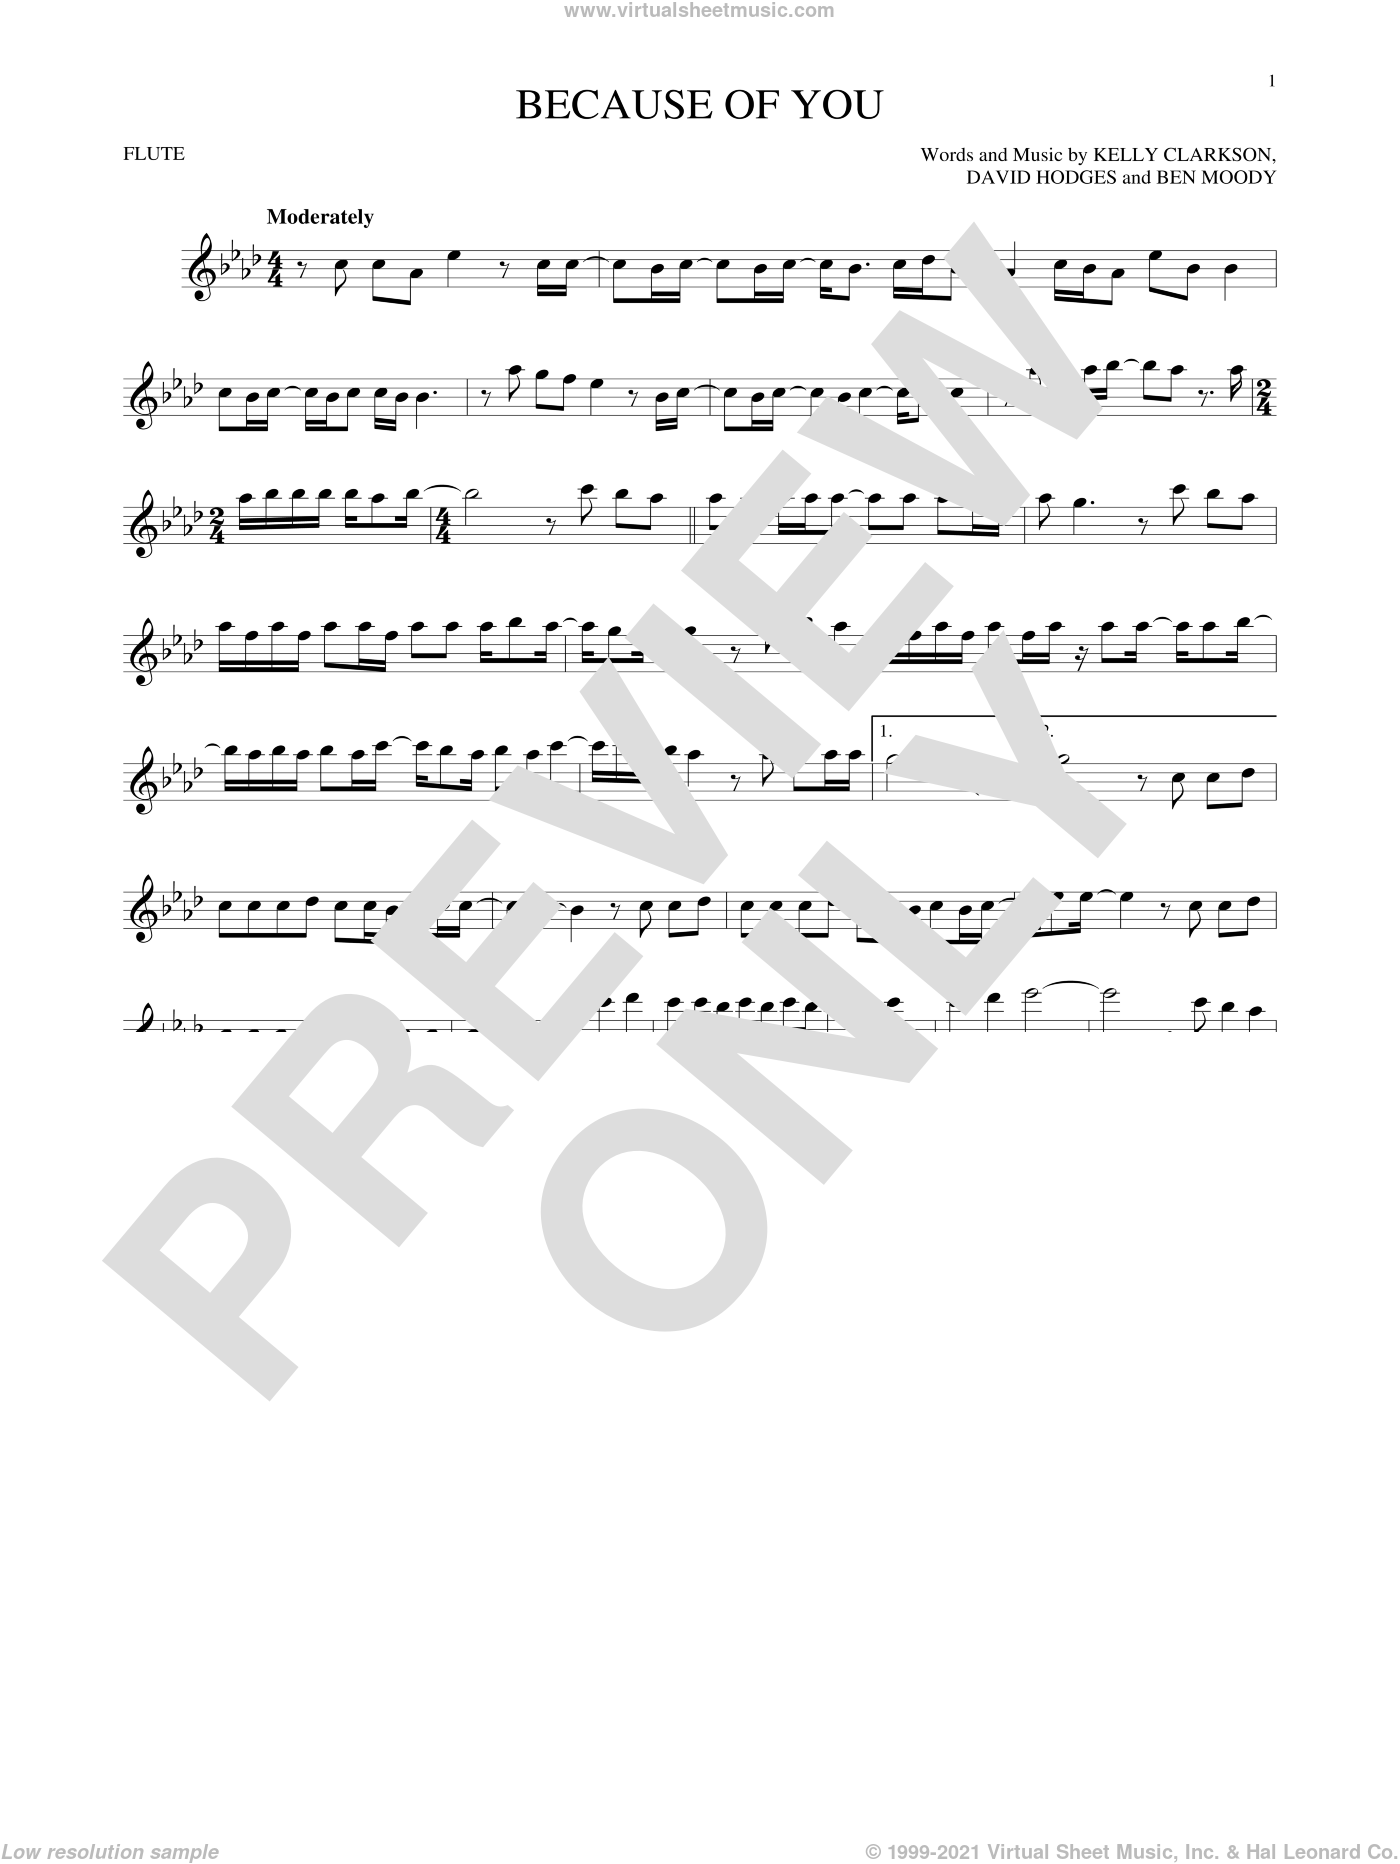 Because Of You sheet music for flute solo by Kelly Clarkson, Ben Moody and David Hodges. Score Image Preview.